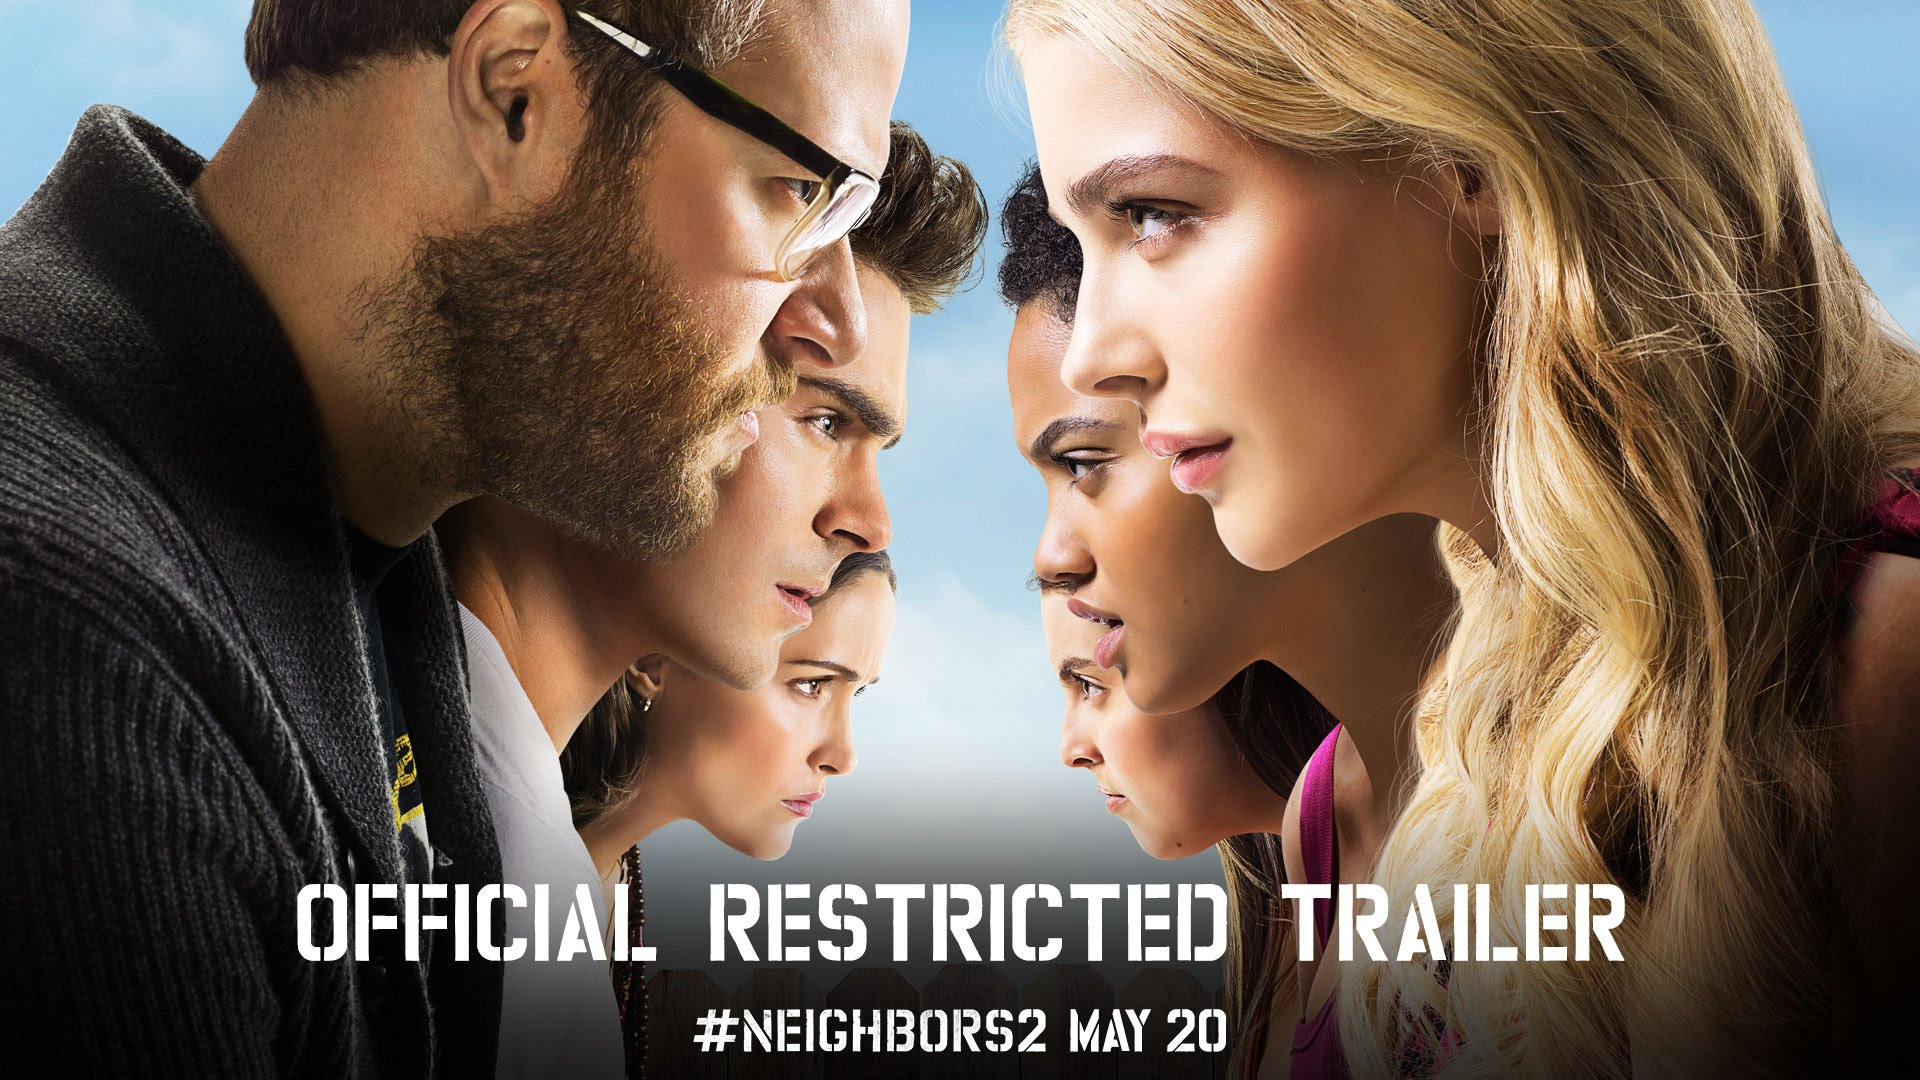 Neighbors 2 - Official Restricted Trailer